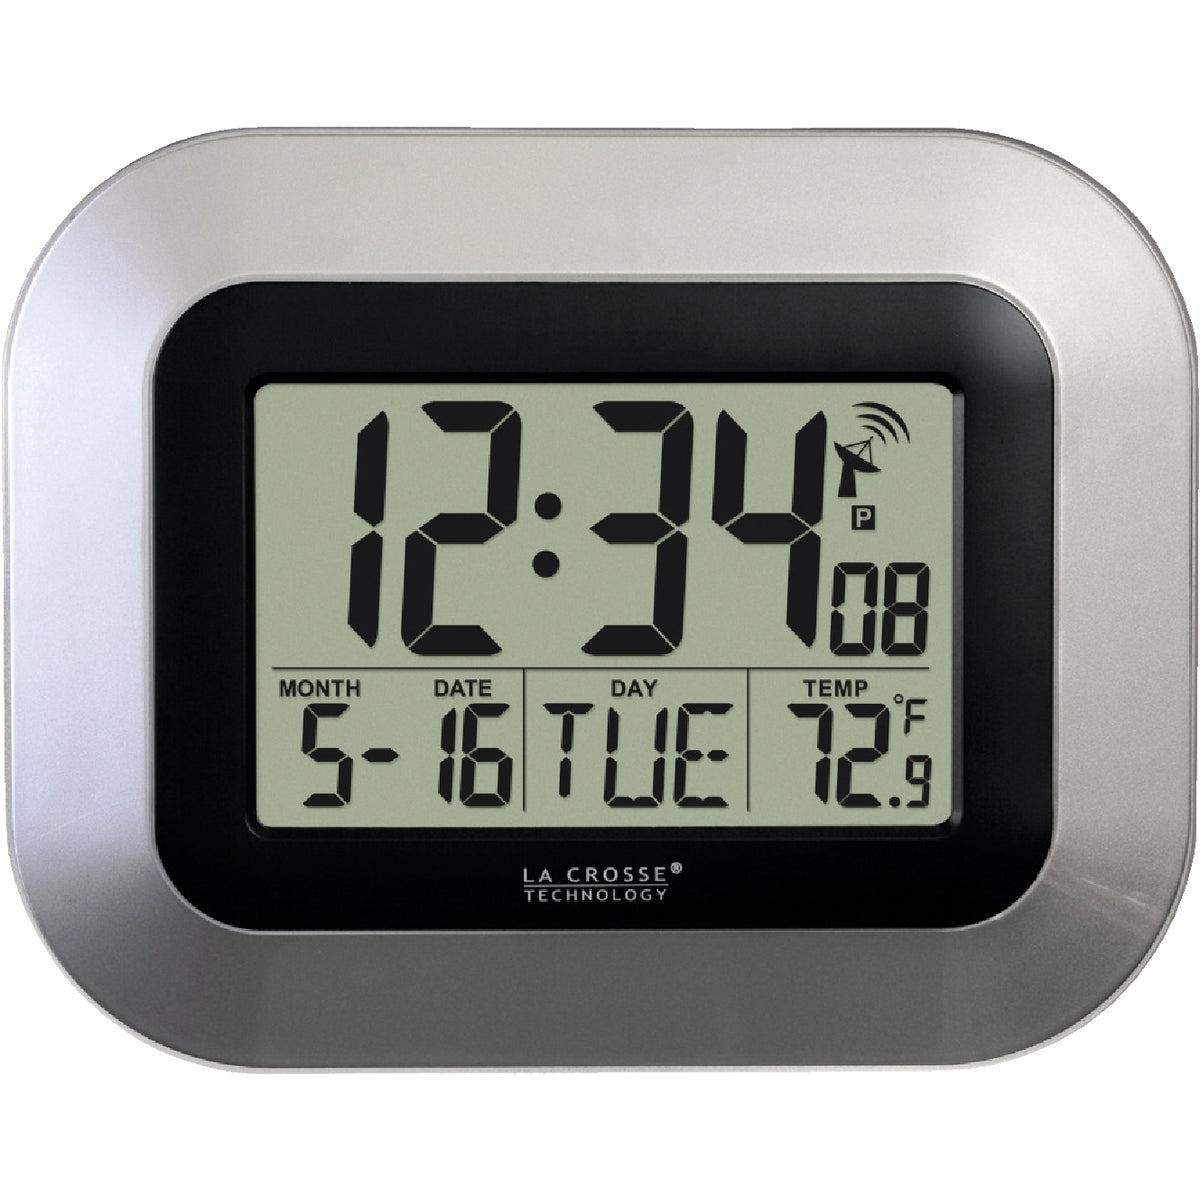 DIGITAL ATOMIC CLOCK - WT-8005U-S by Lacrosse Technology